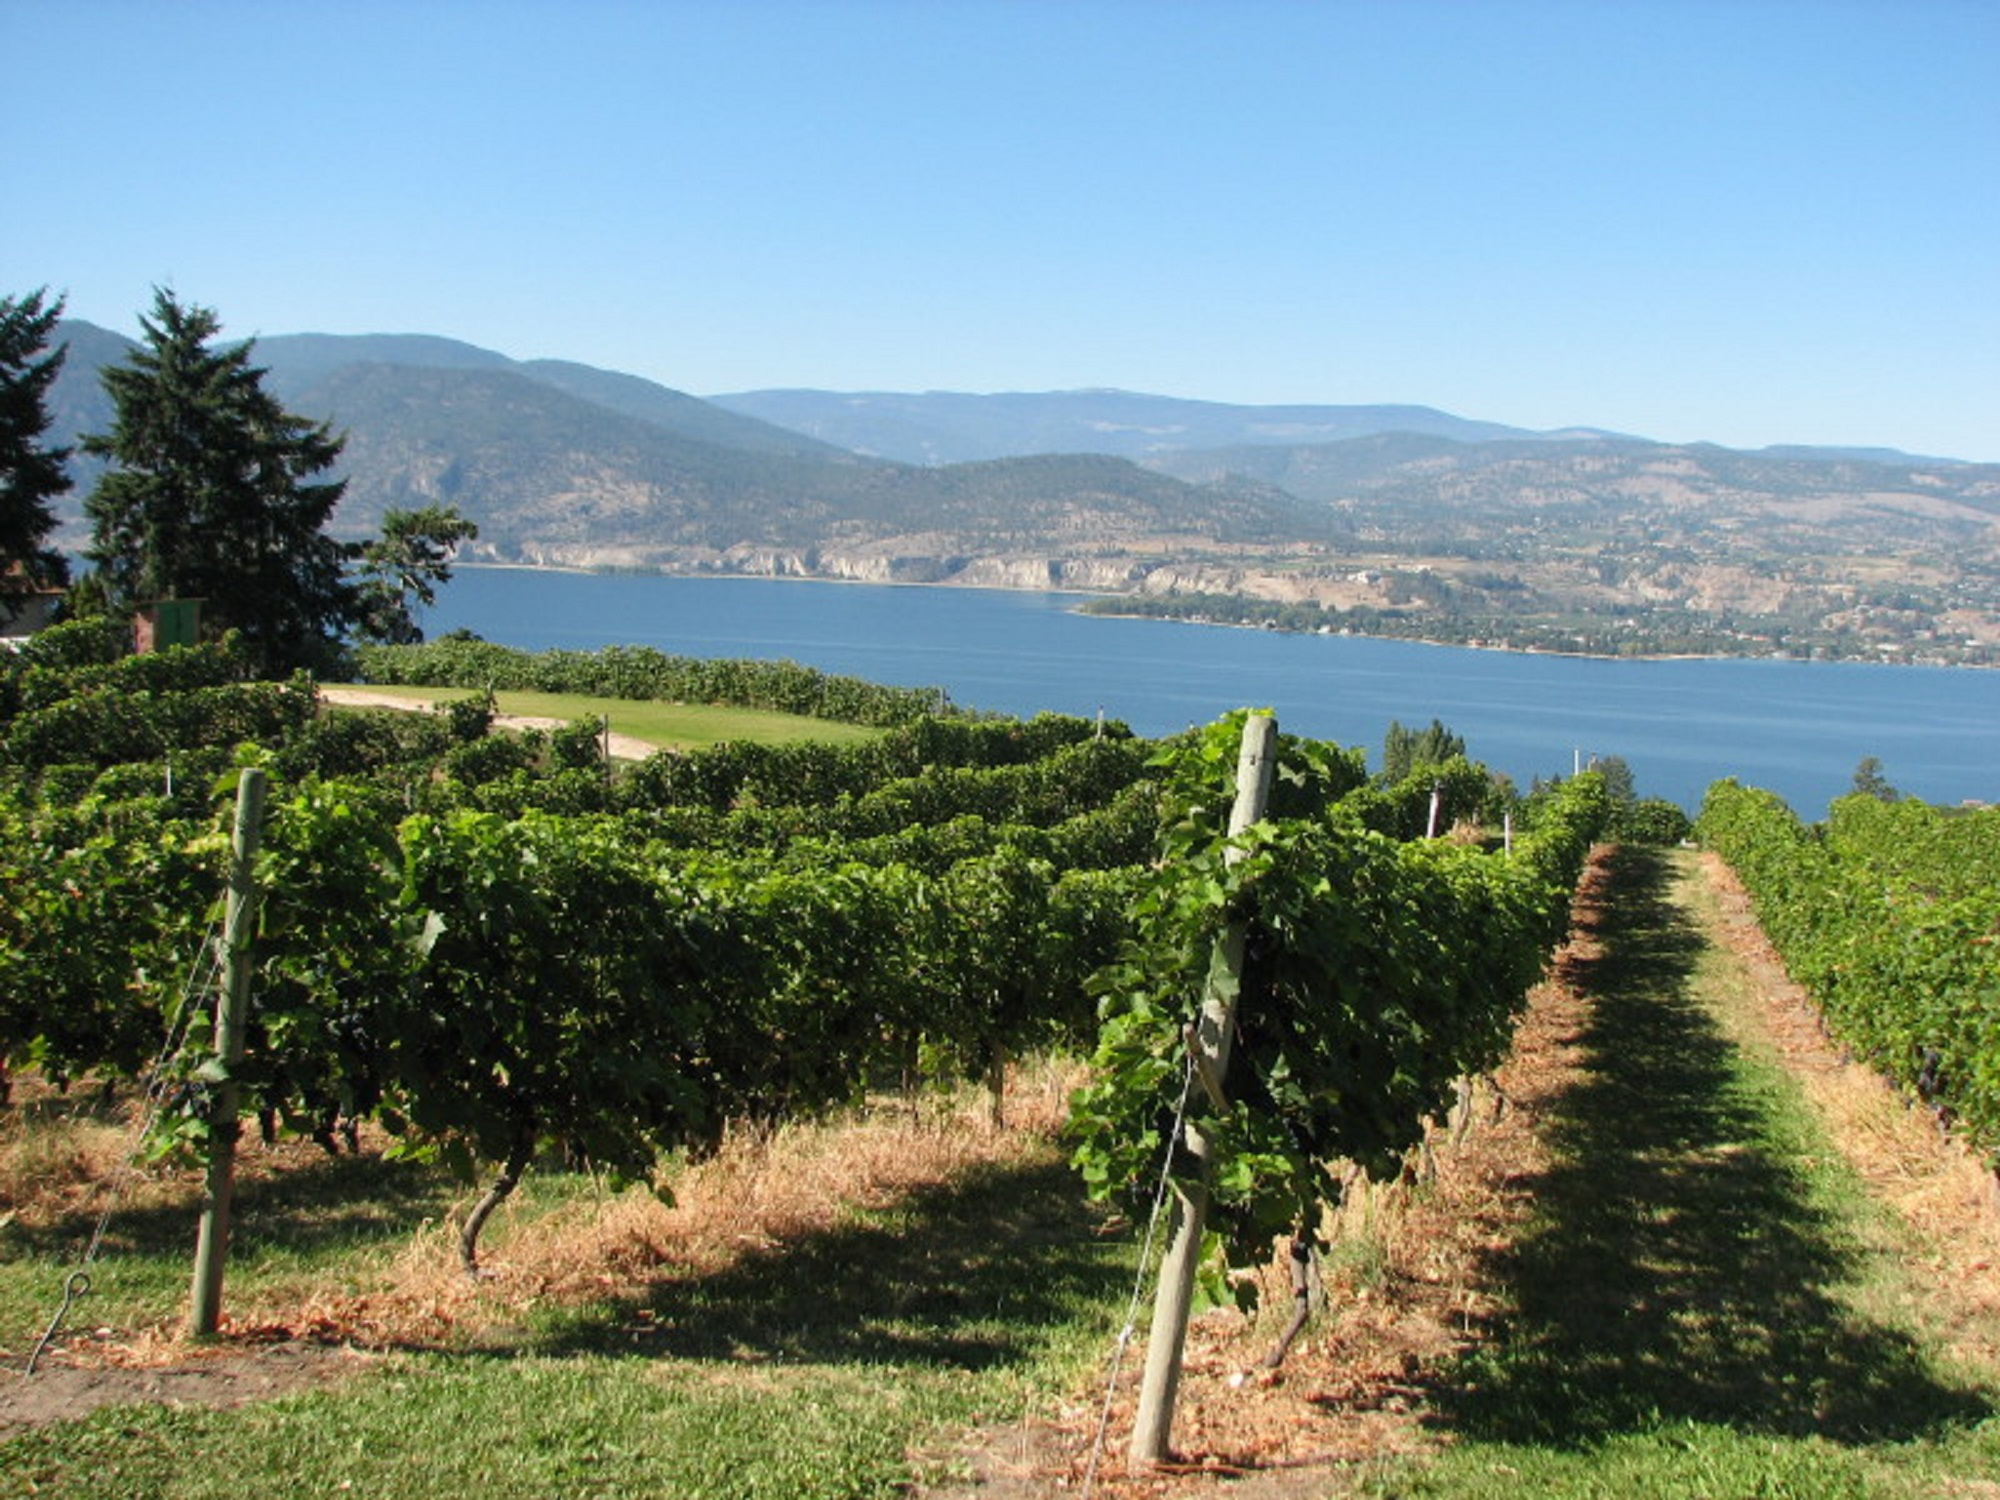 Penticton & Naramata, BC – Home of Sun, Sand, Watersports & Wineries